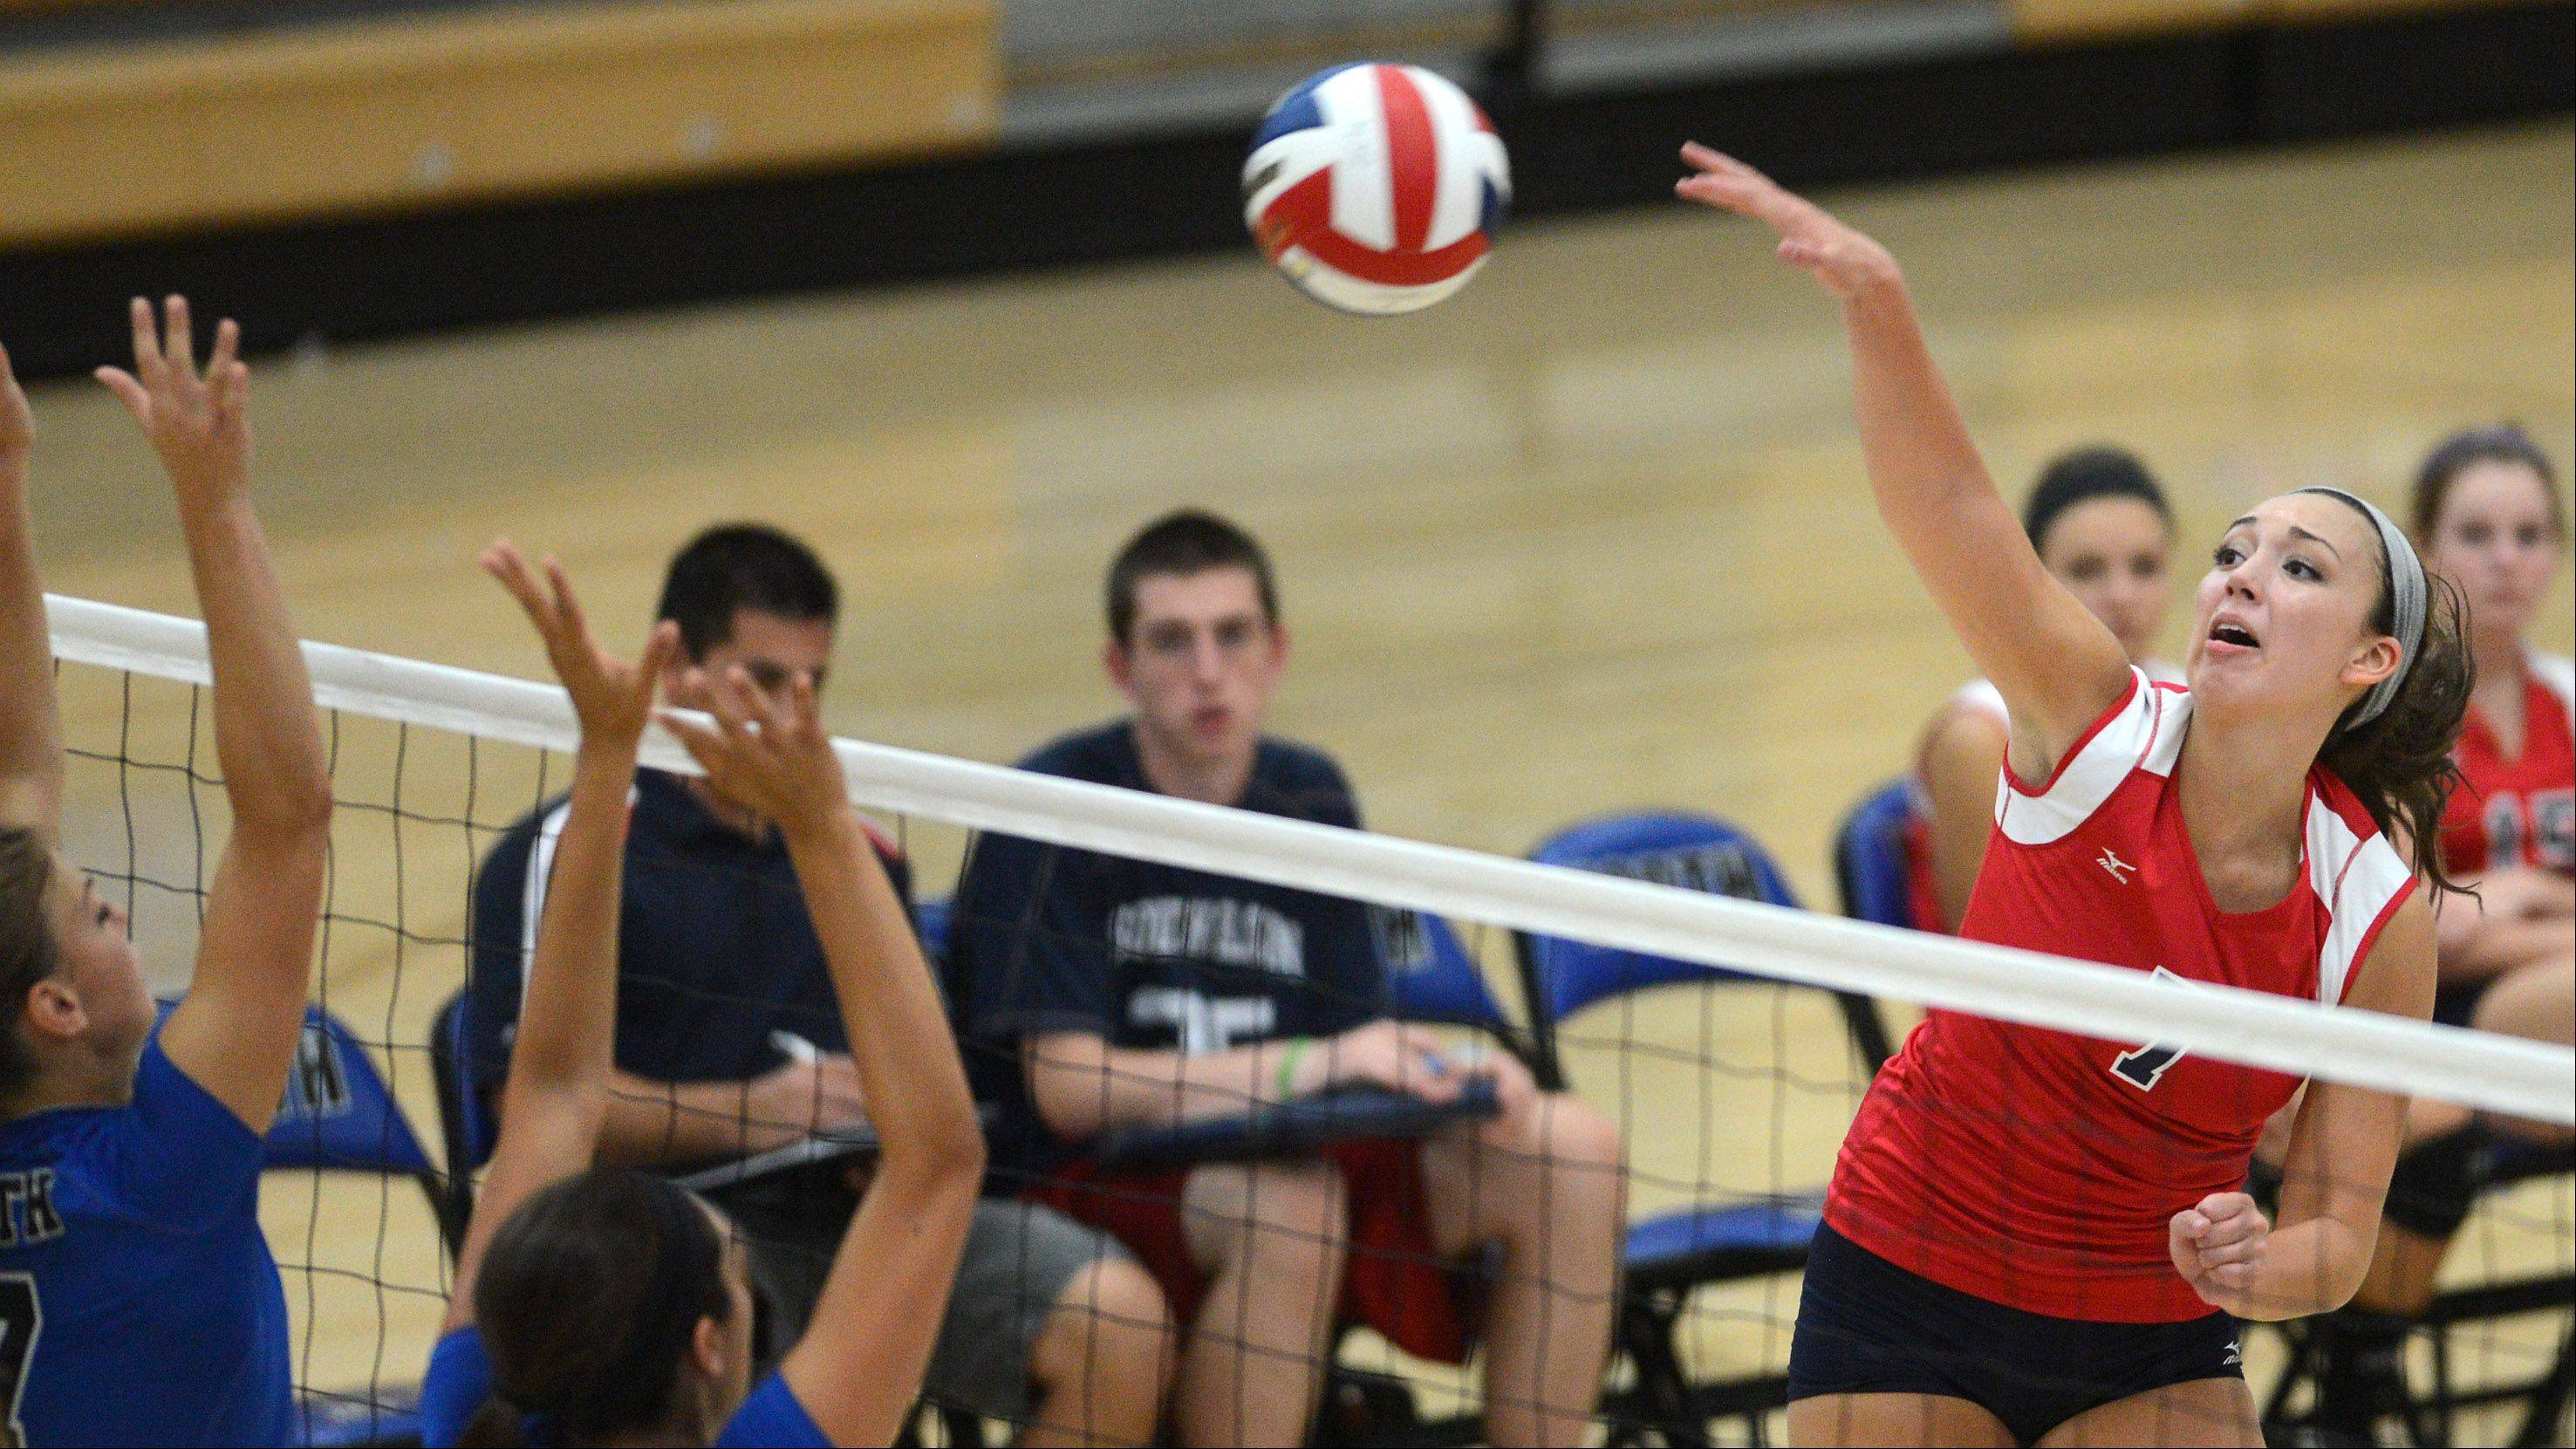 South Elgin's Ashley Oandasan drives the ball past a pair of St. Charles North blockers during Thursday's game in St. Charles.